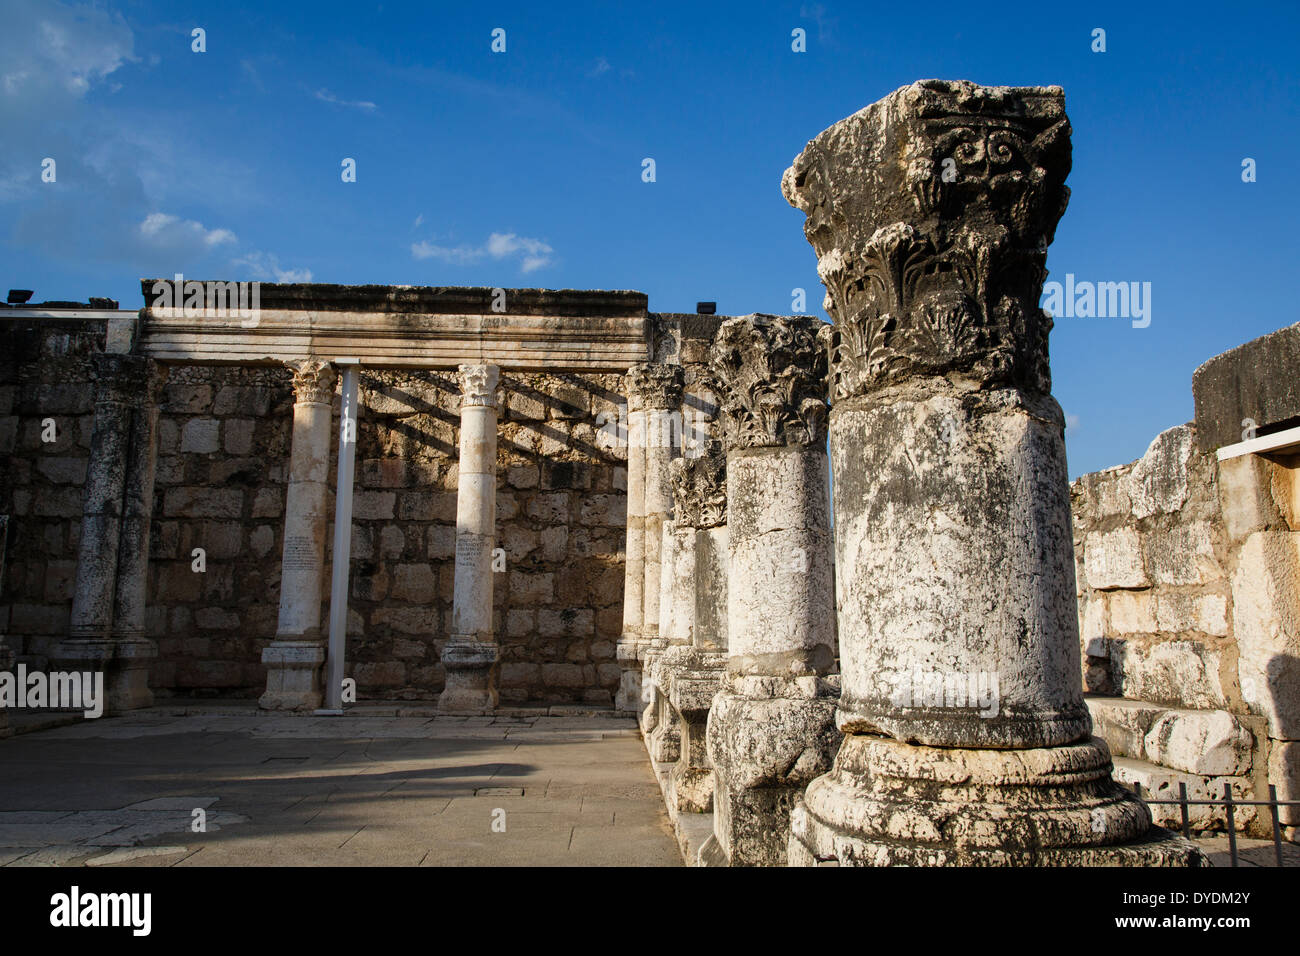 Ruins of the old synagogue in Capernaum by the Sea of Galilee, Israel. - Stock Image